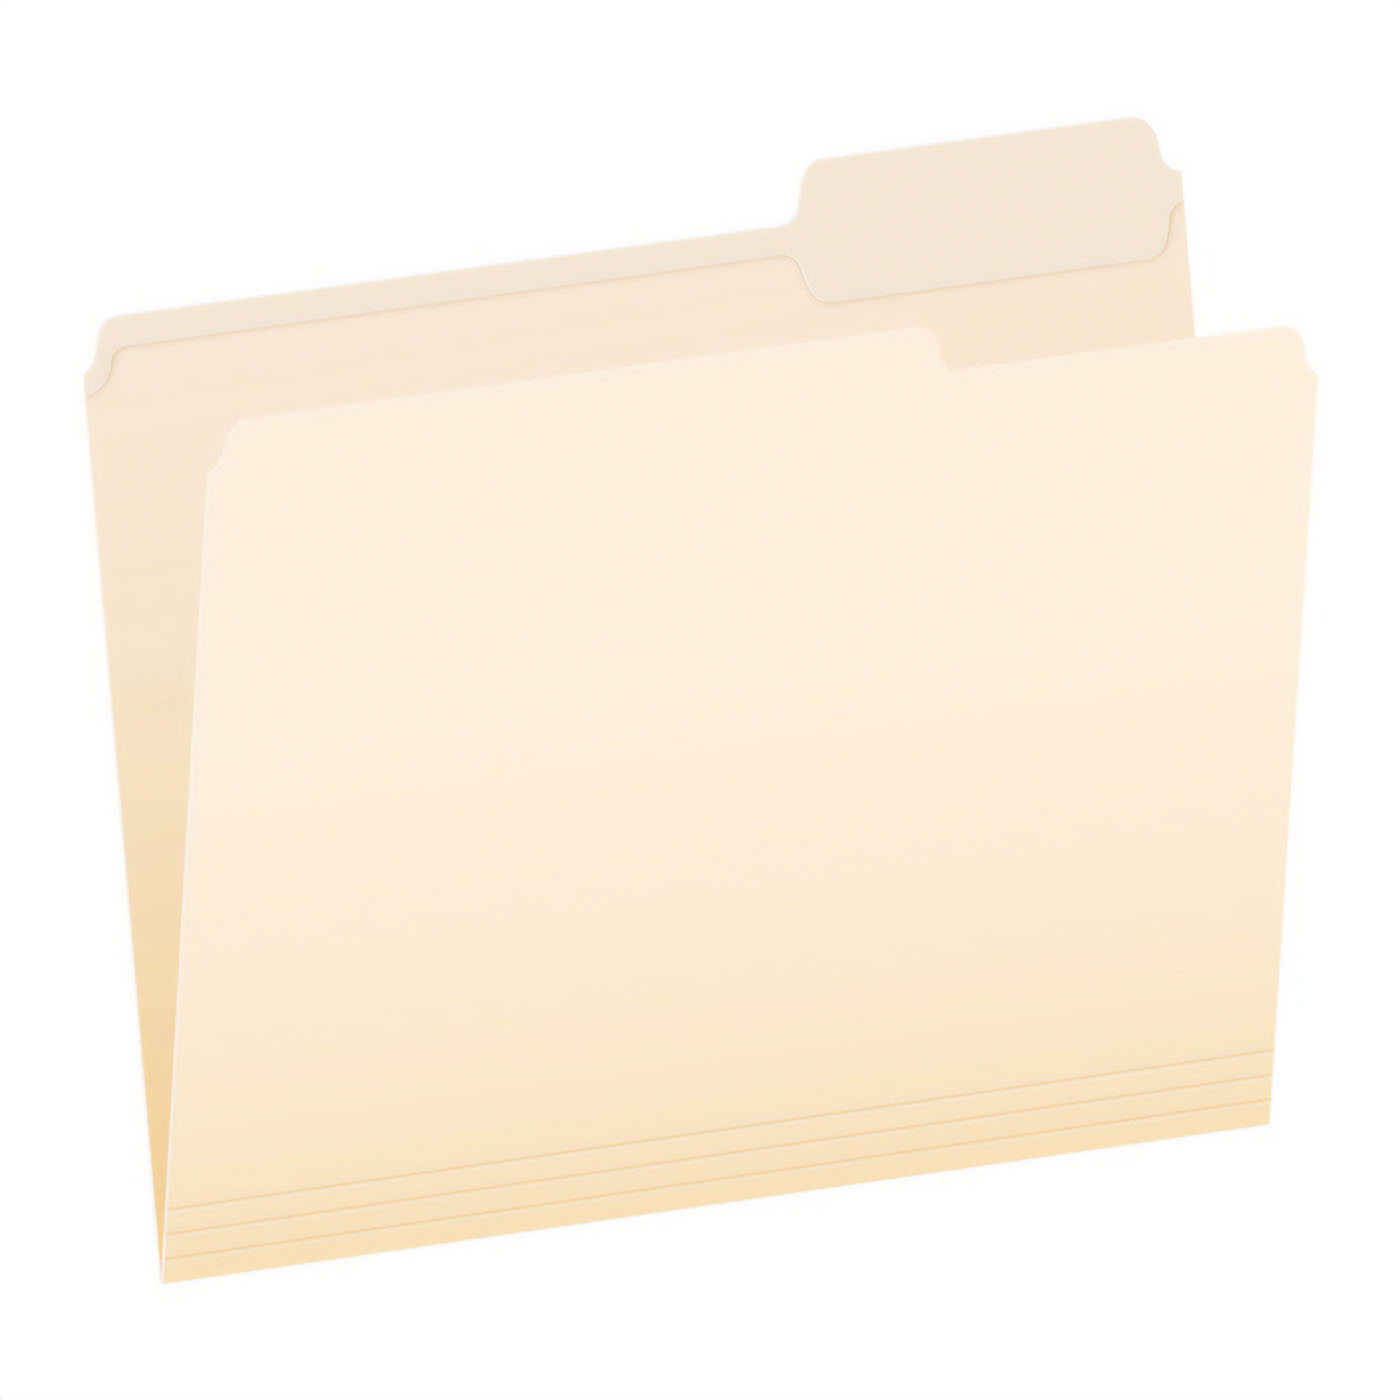 Pendaflex Manila Letter File Folder 1/3 Cut 100-count